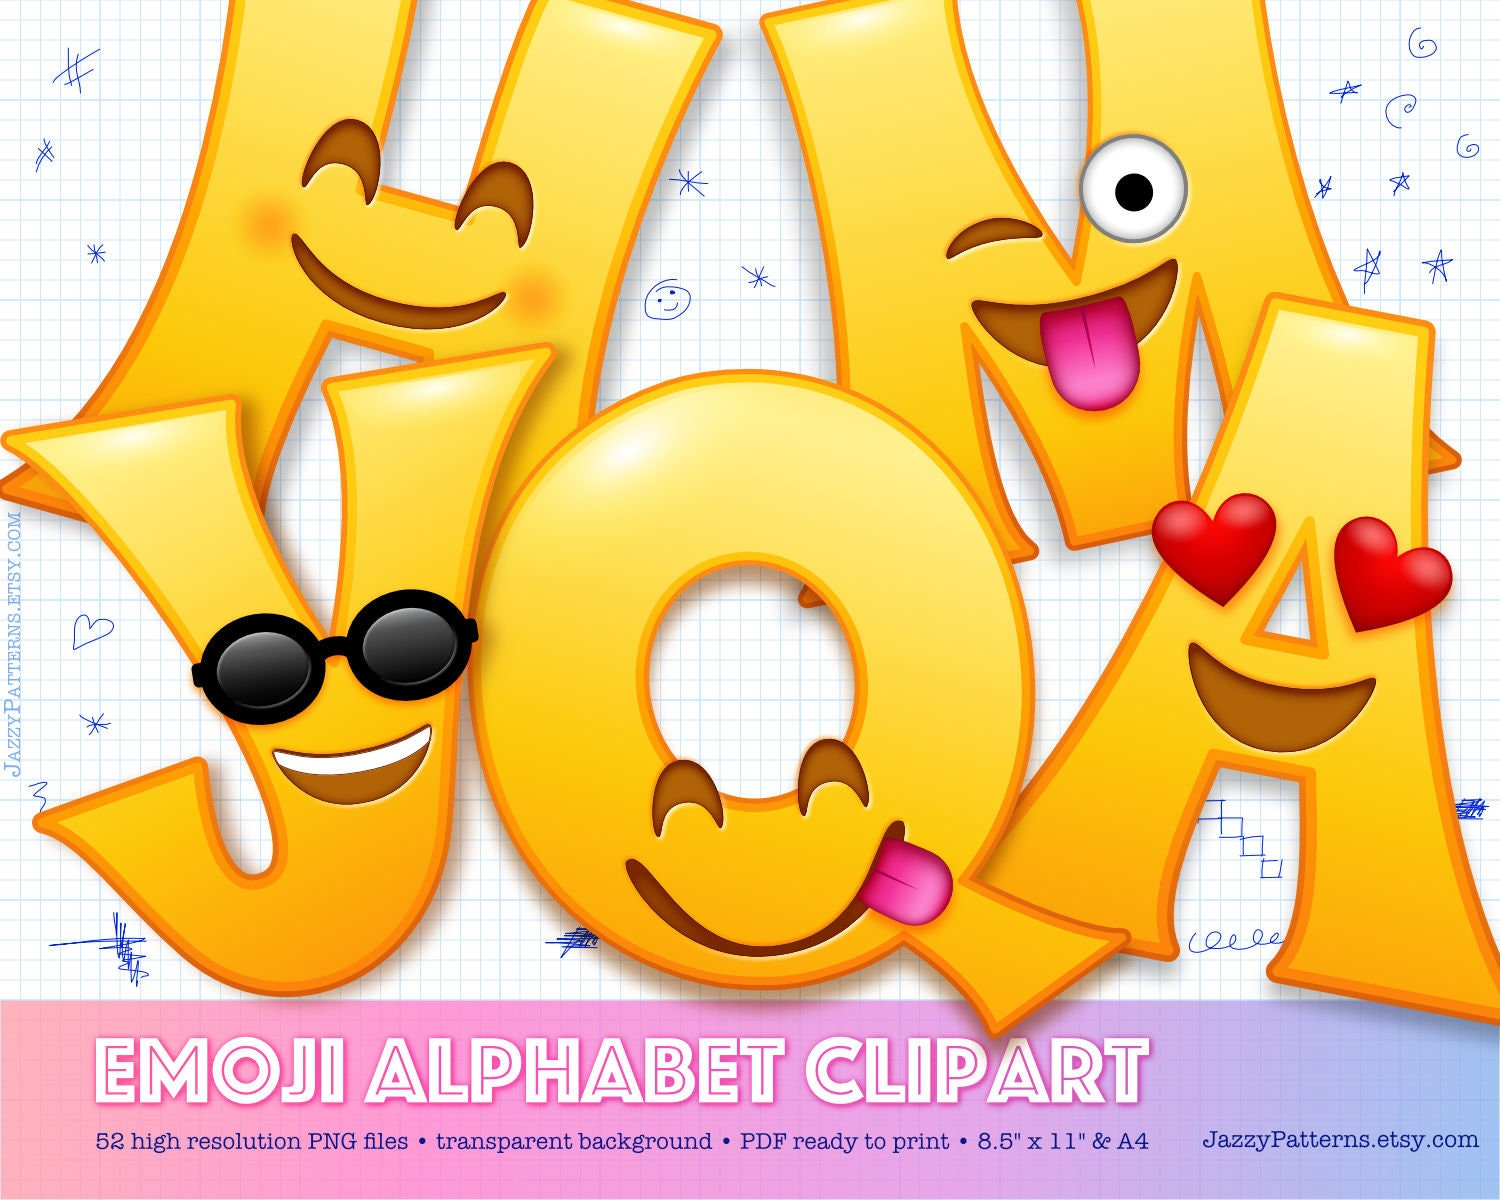 Emoji Alphabet Clipart Smiling Face Letters For Diy Birthday Etsy Jpg 1500x1200 Party Transparent